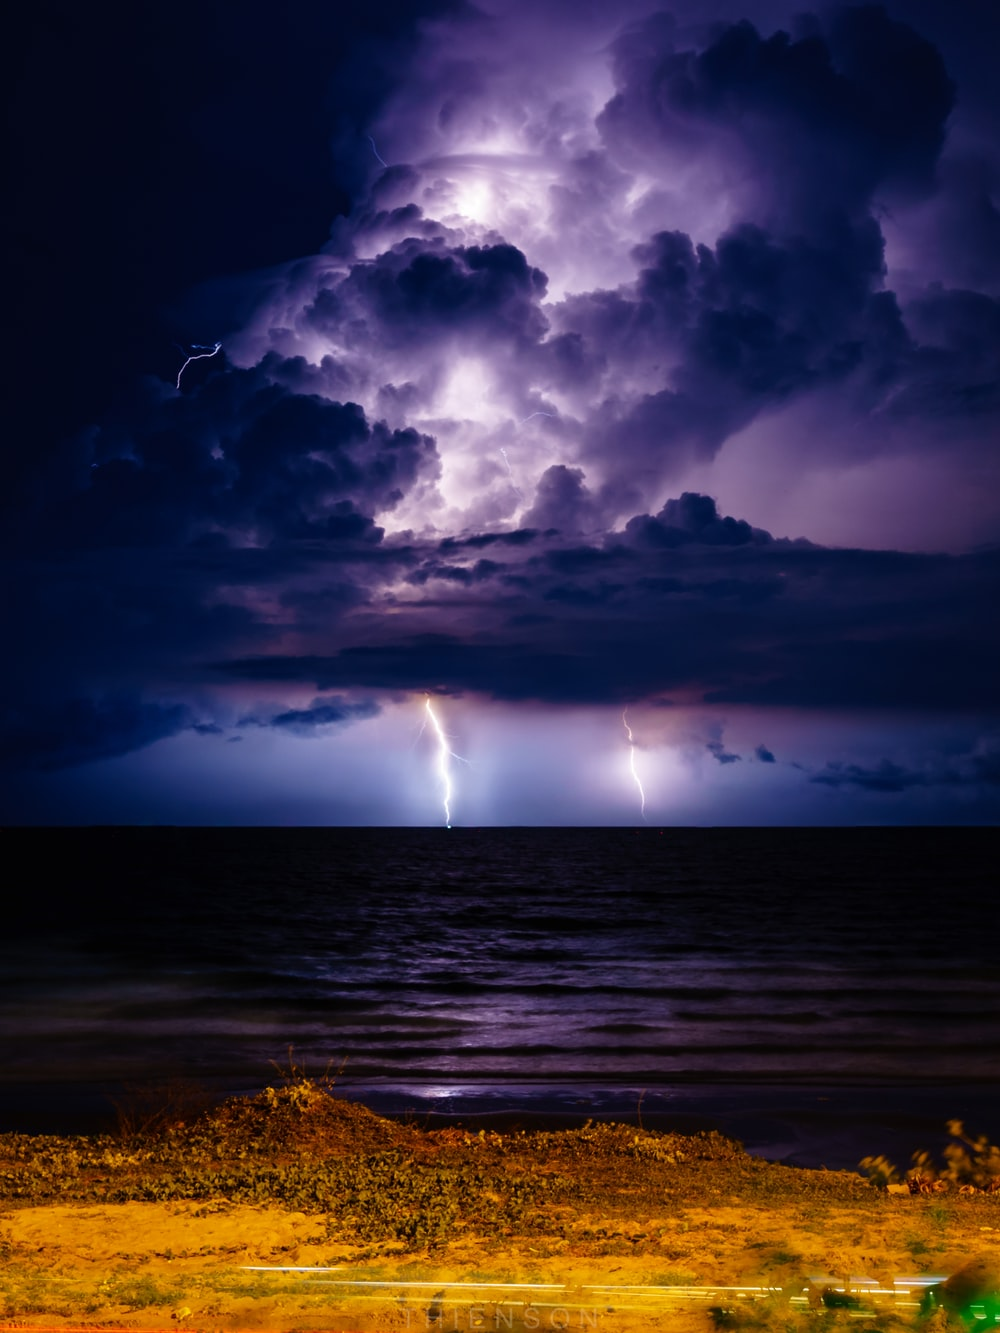 purple sky with clouds and lightning